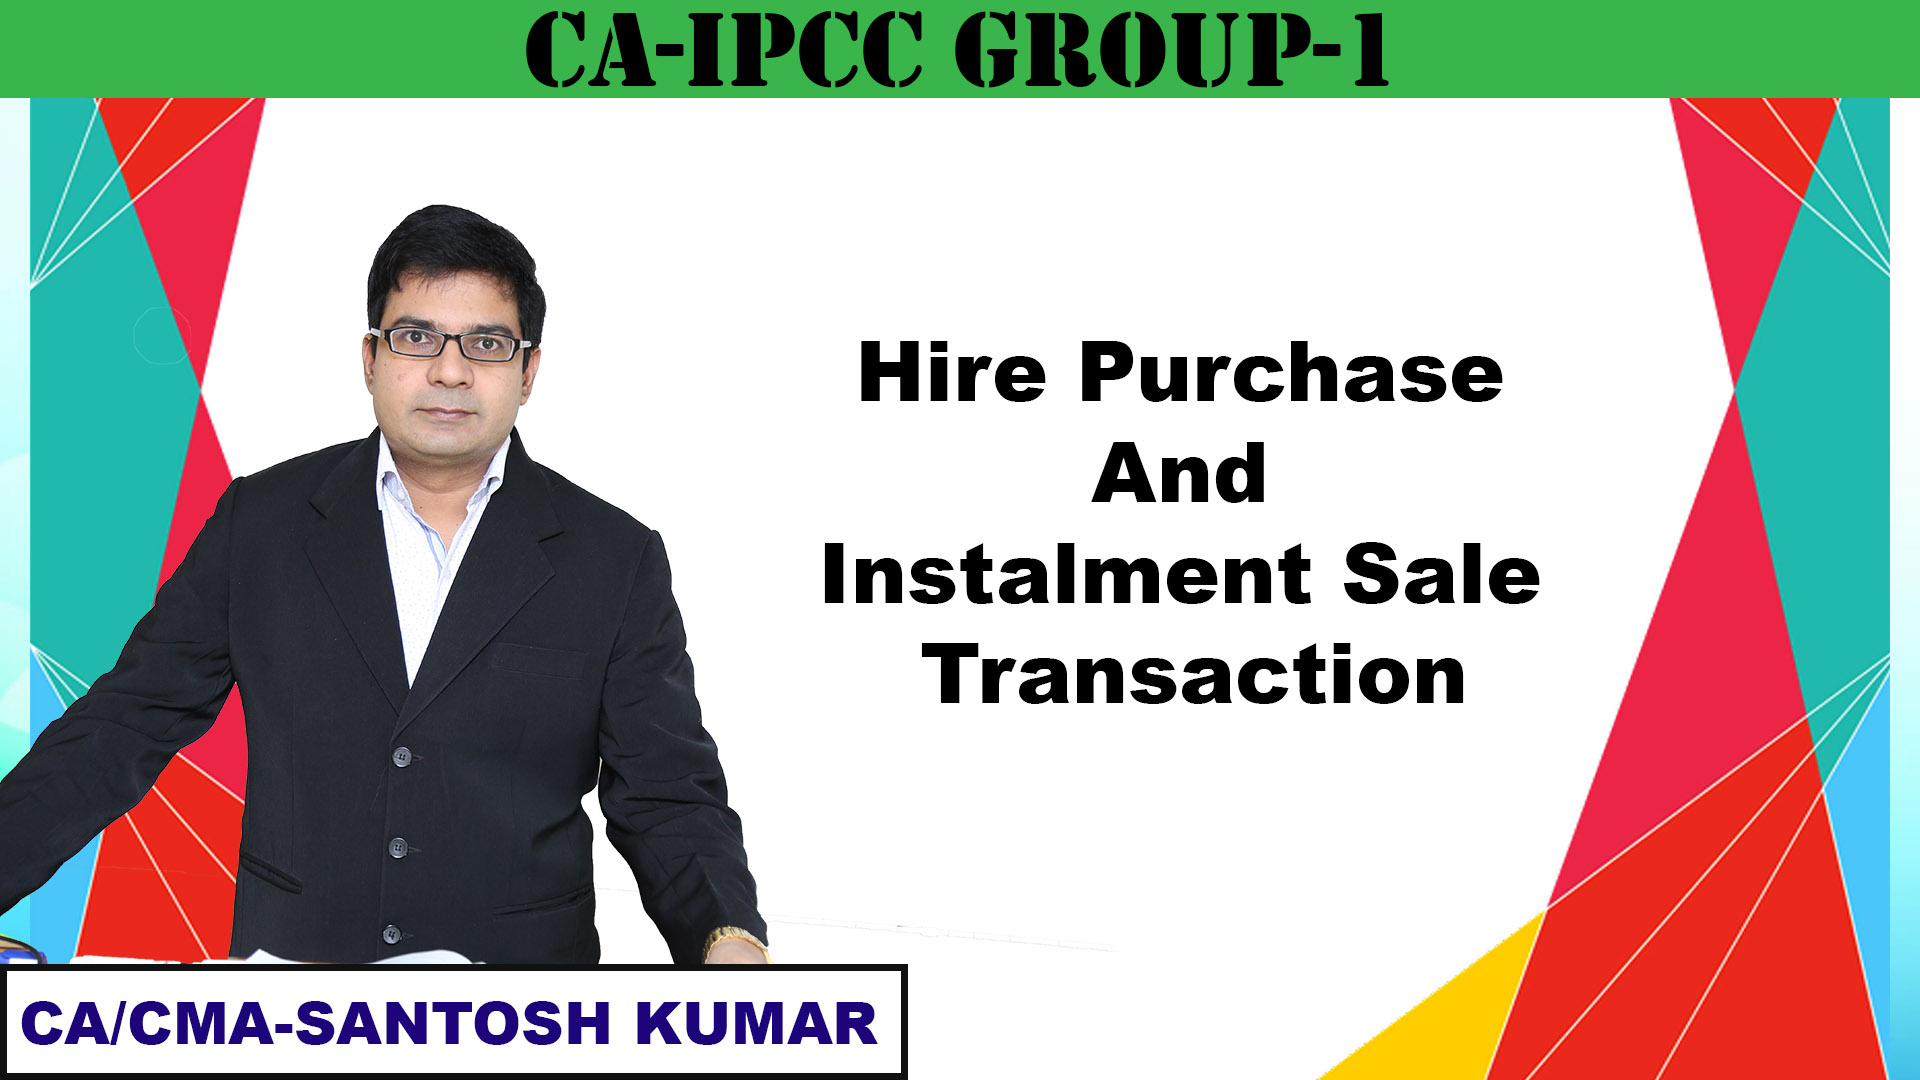 Hire Purchase and Instalment Sale Transaction